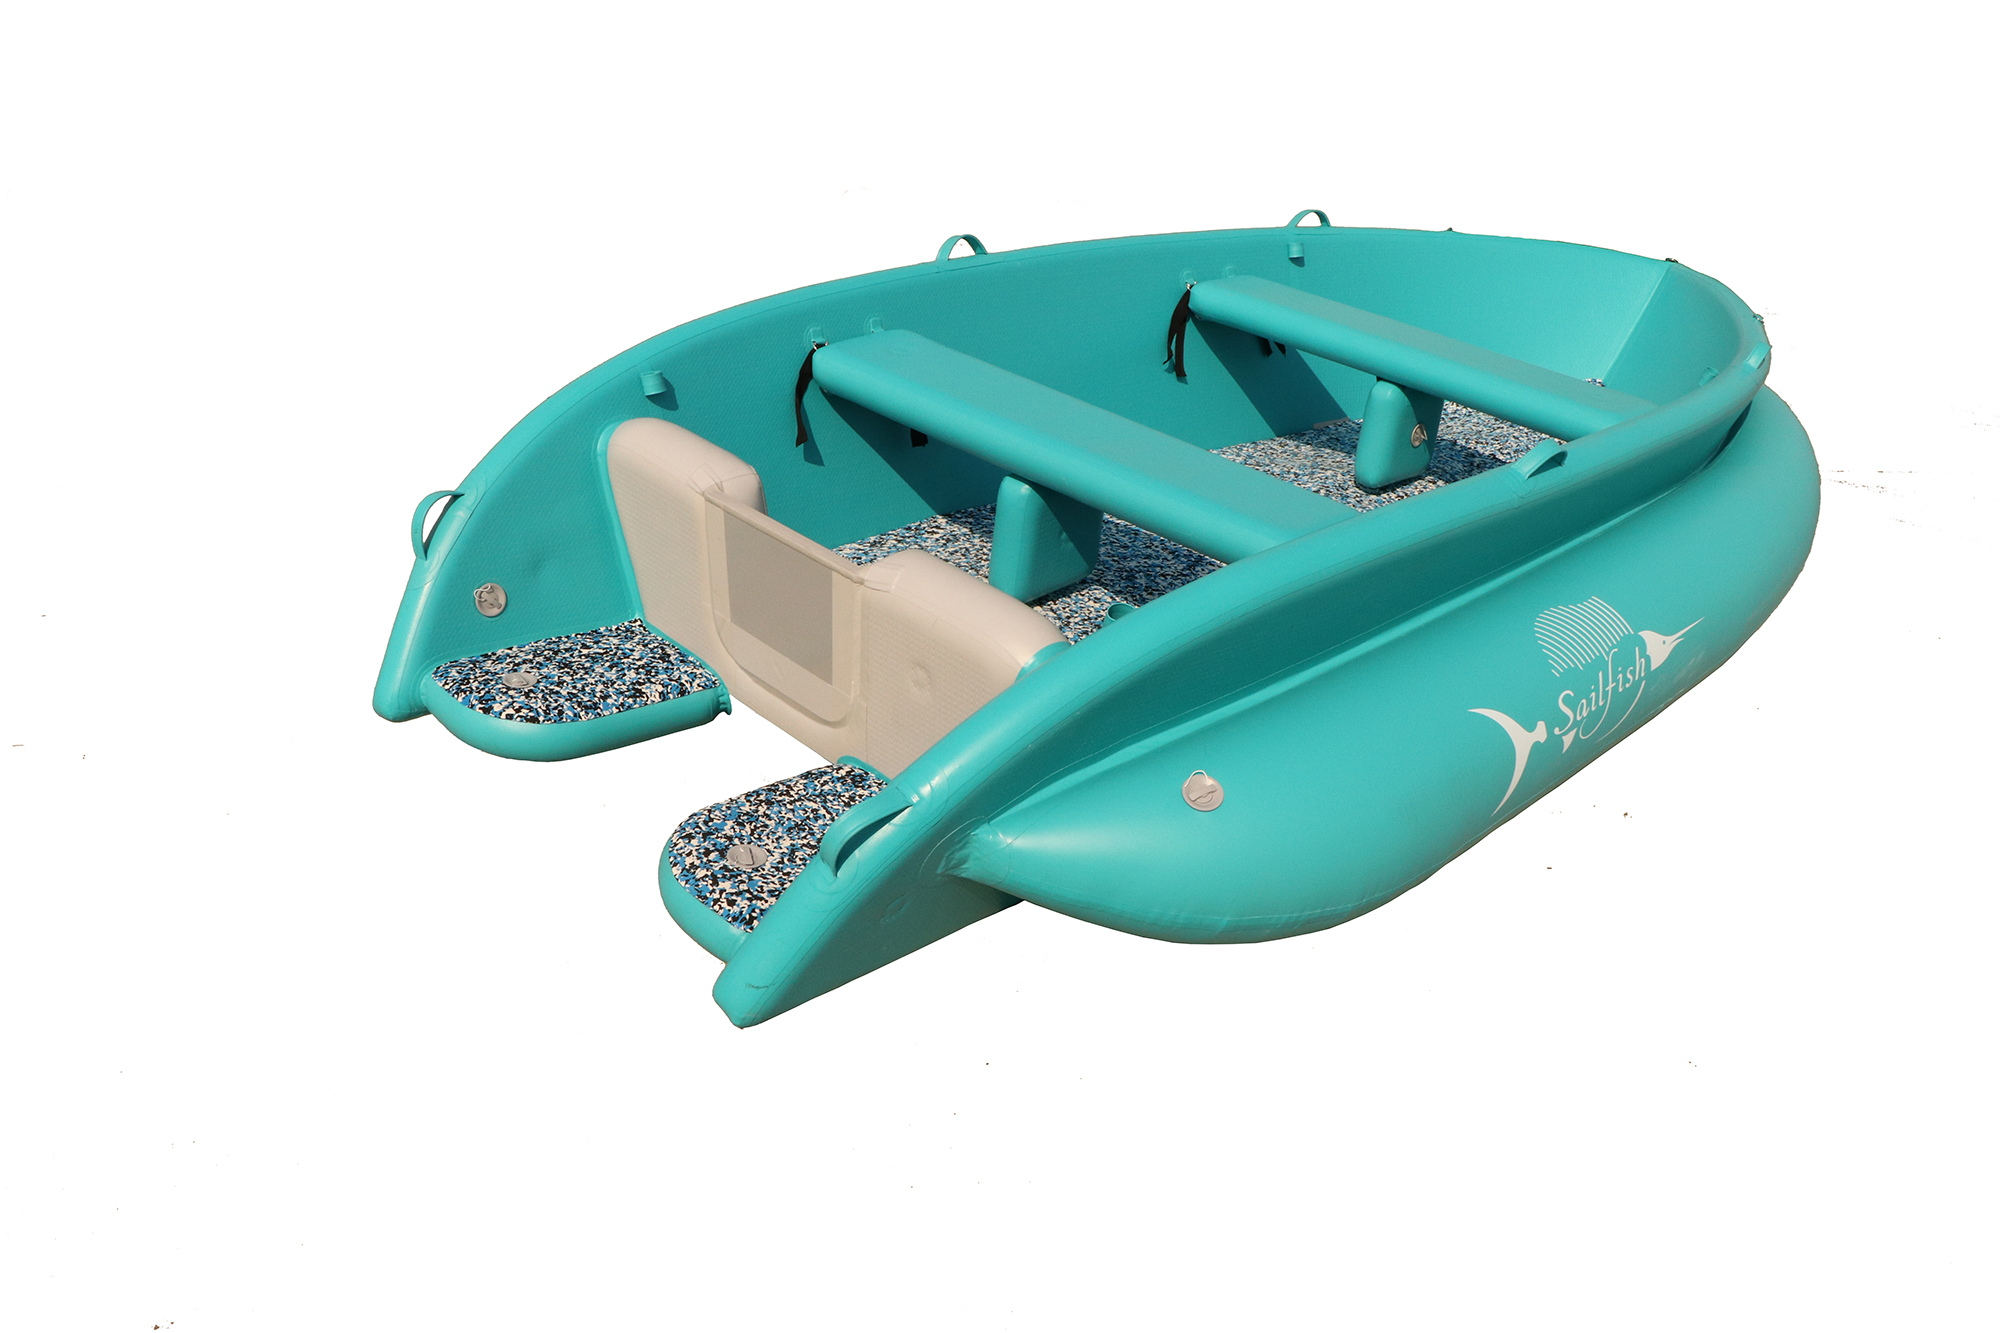 2020 High Quality Inflatable Fishing Boat